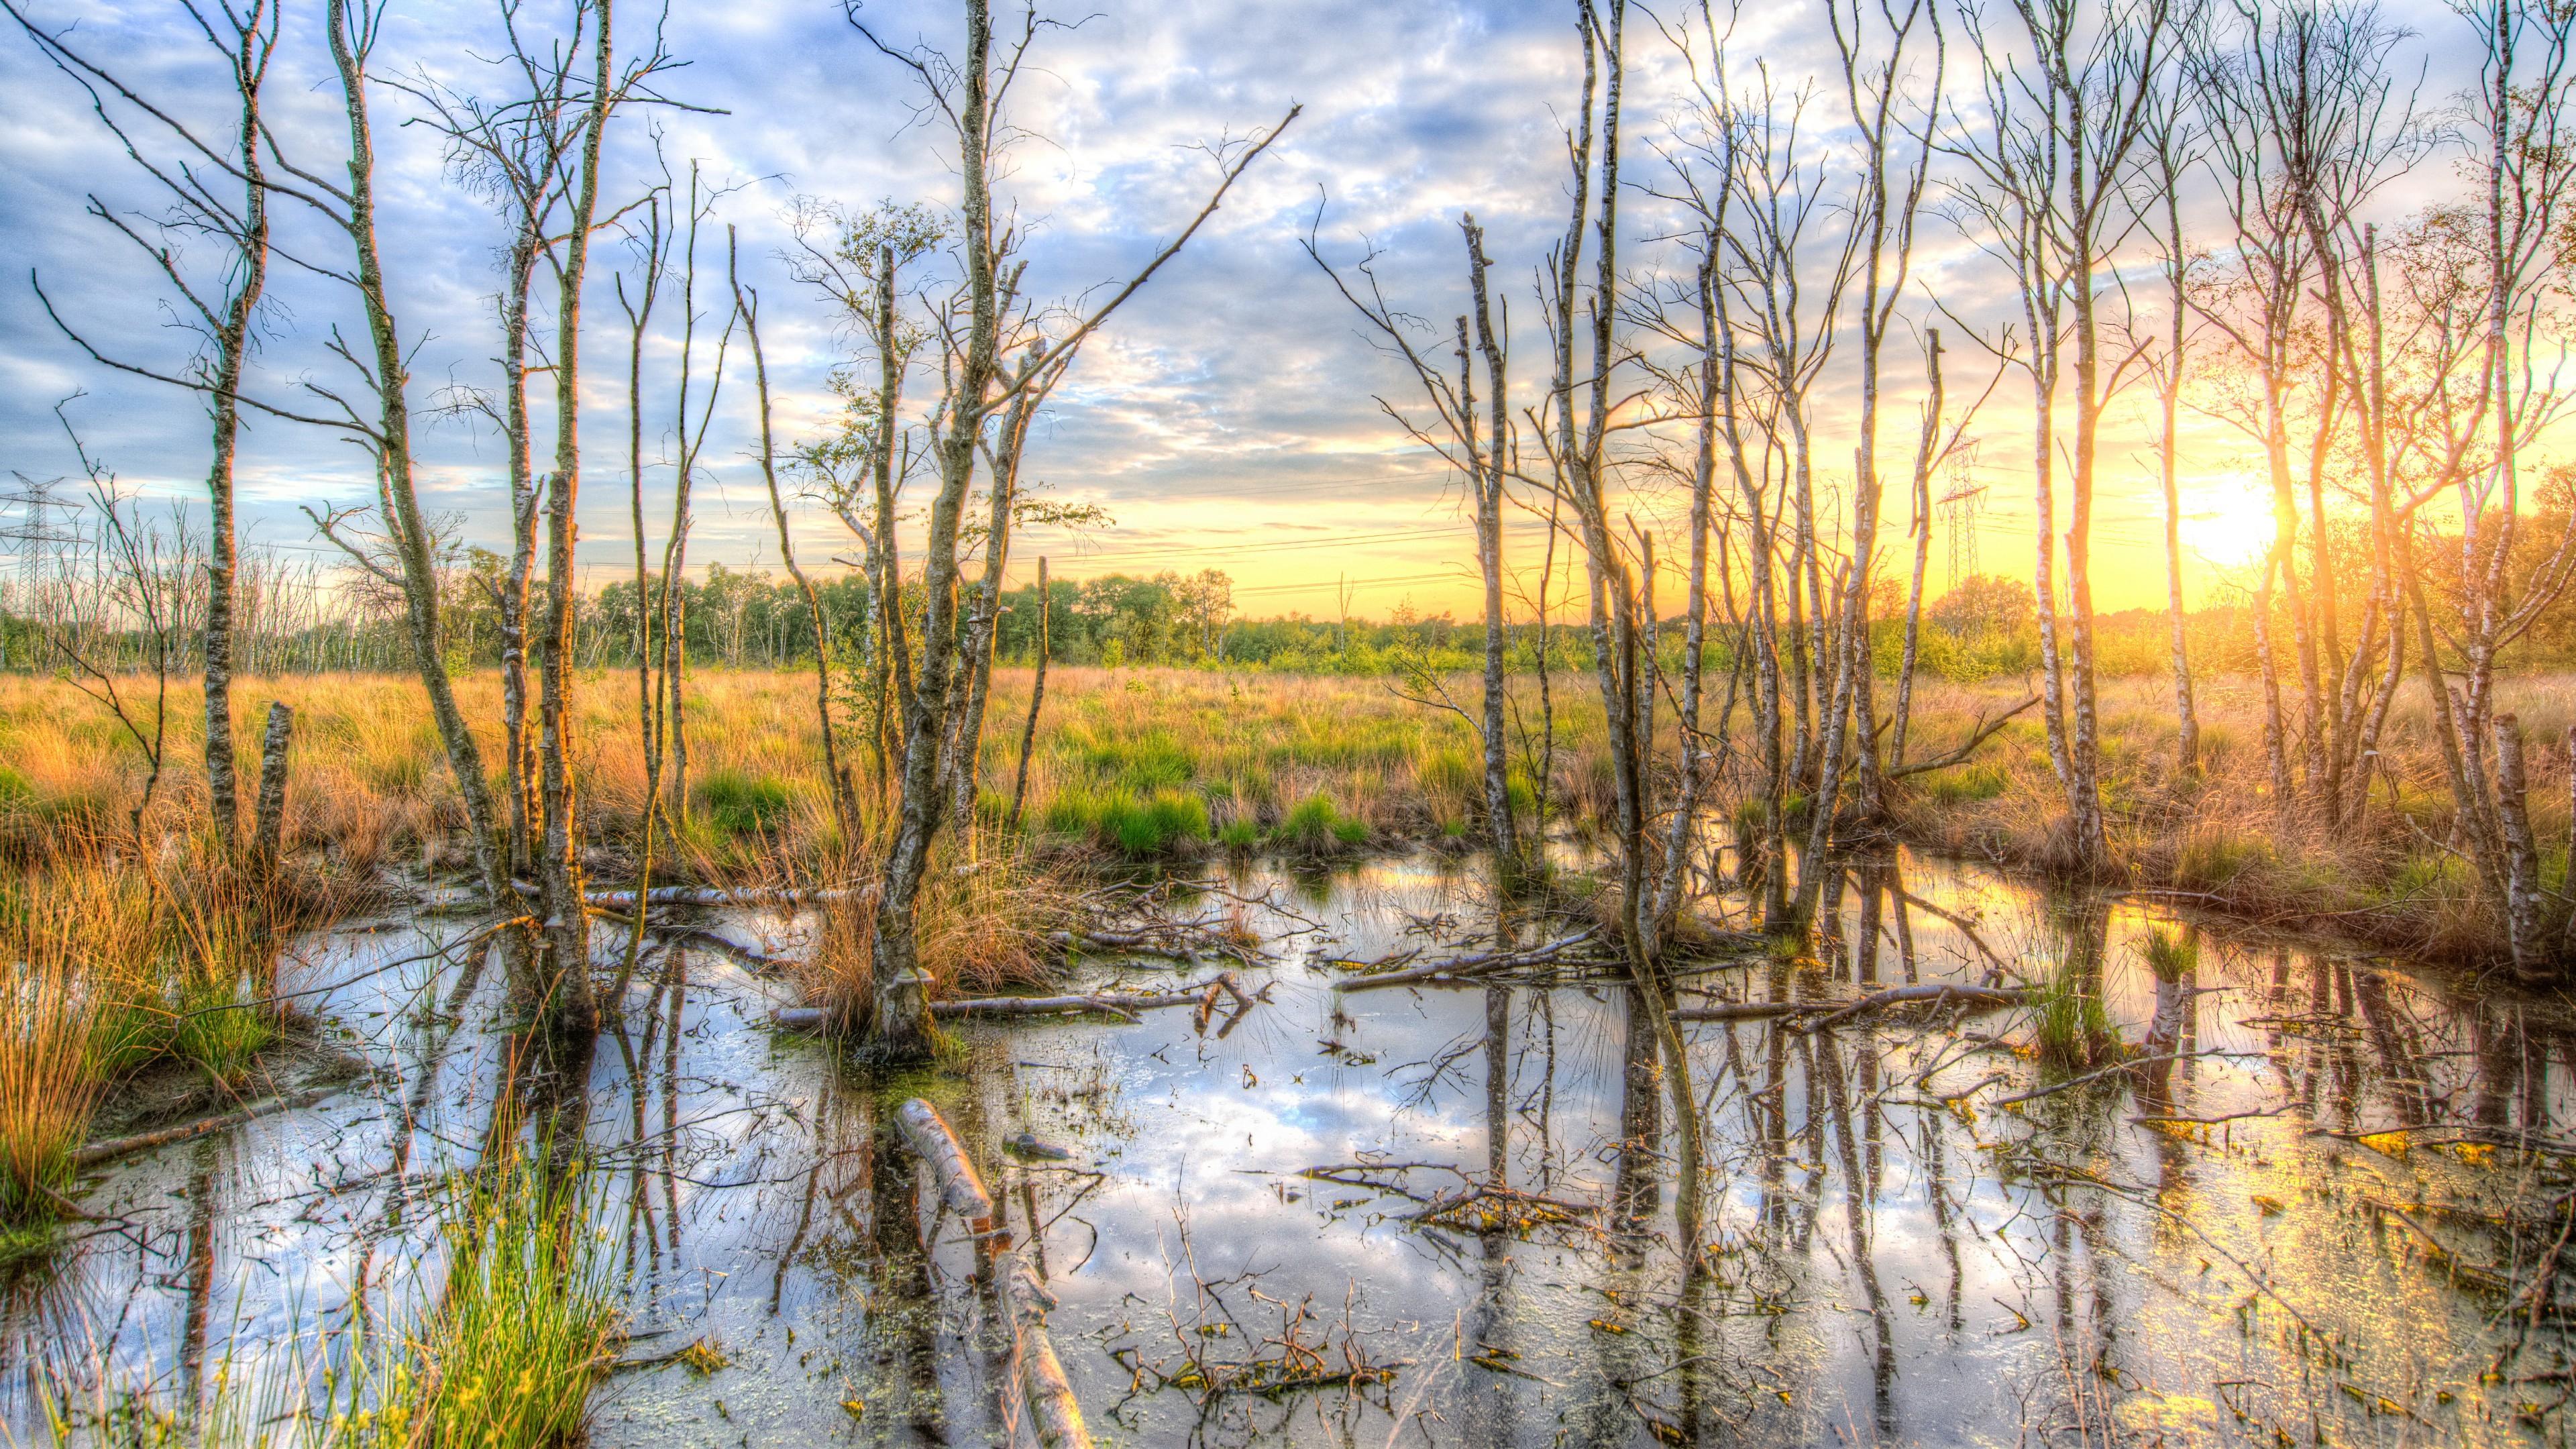 Sunrise reflection in the wetland wallpaper